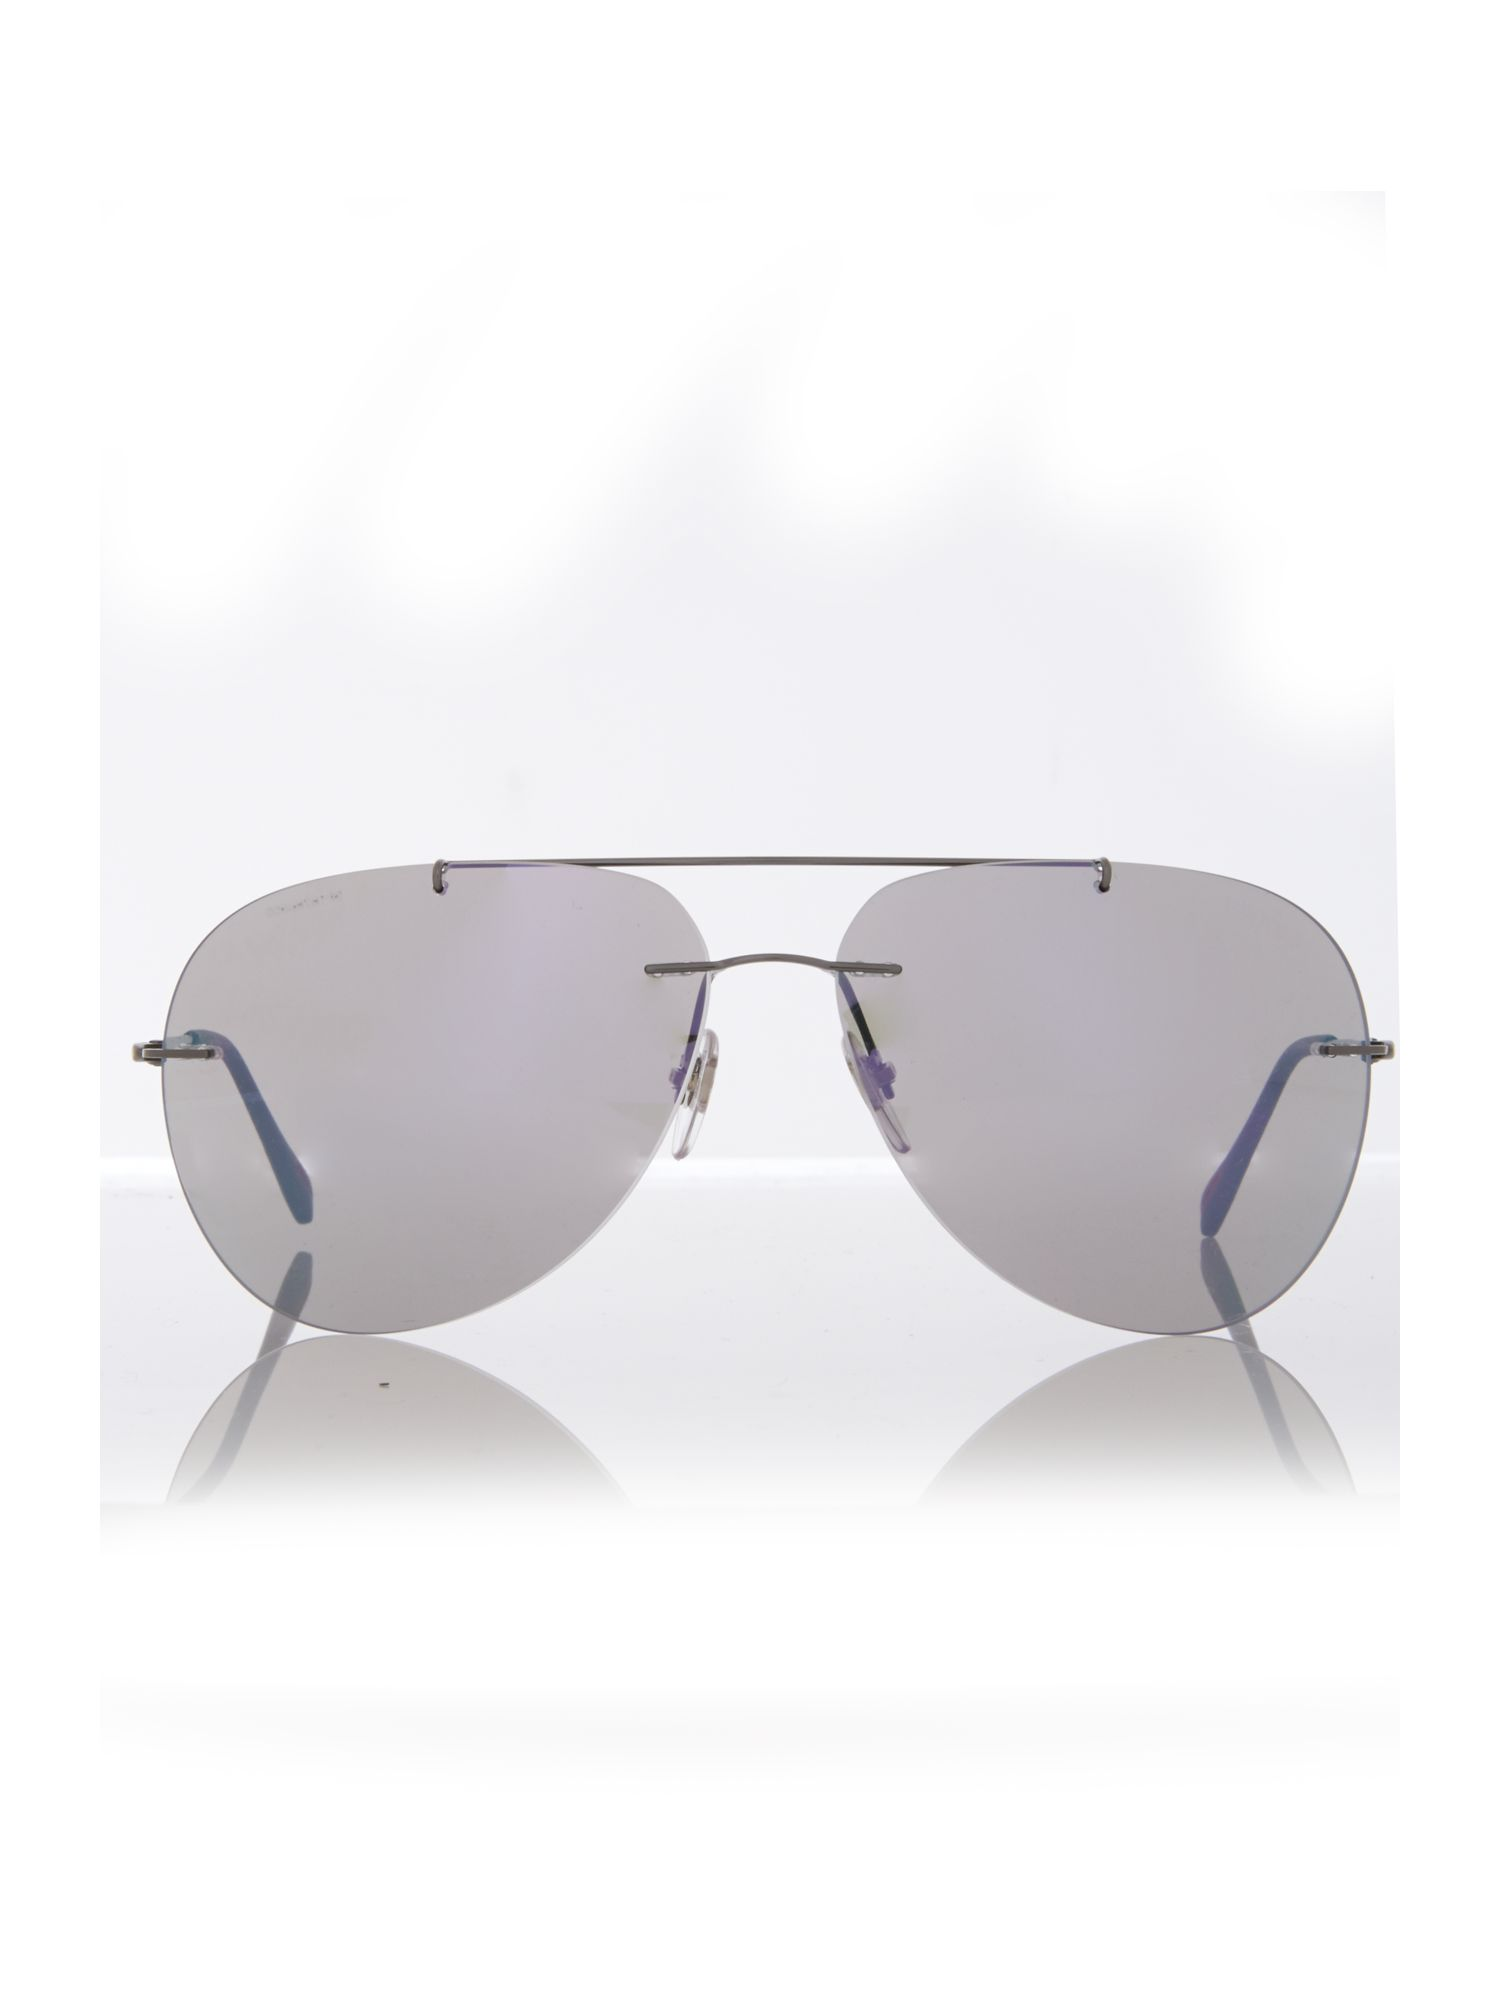 Men`s sunglasses